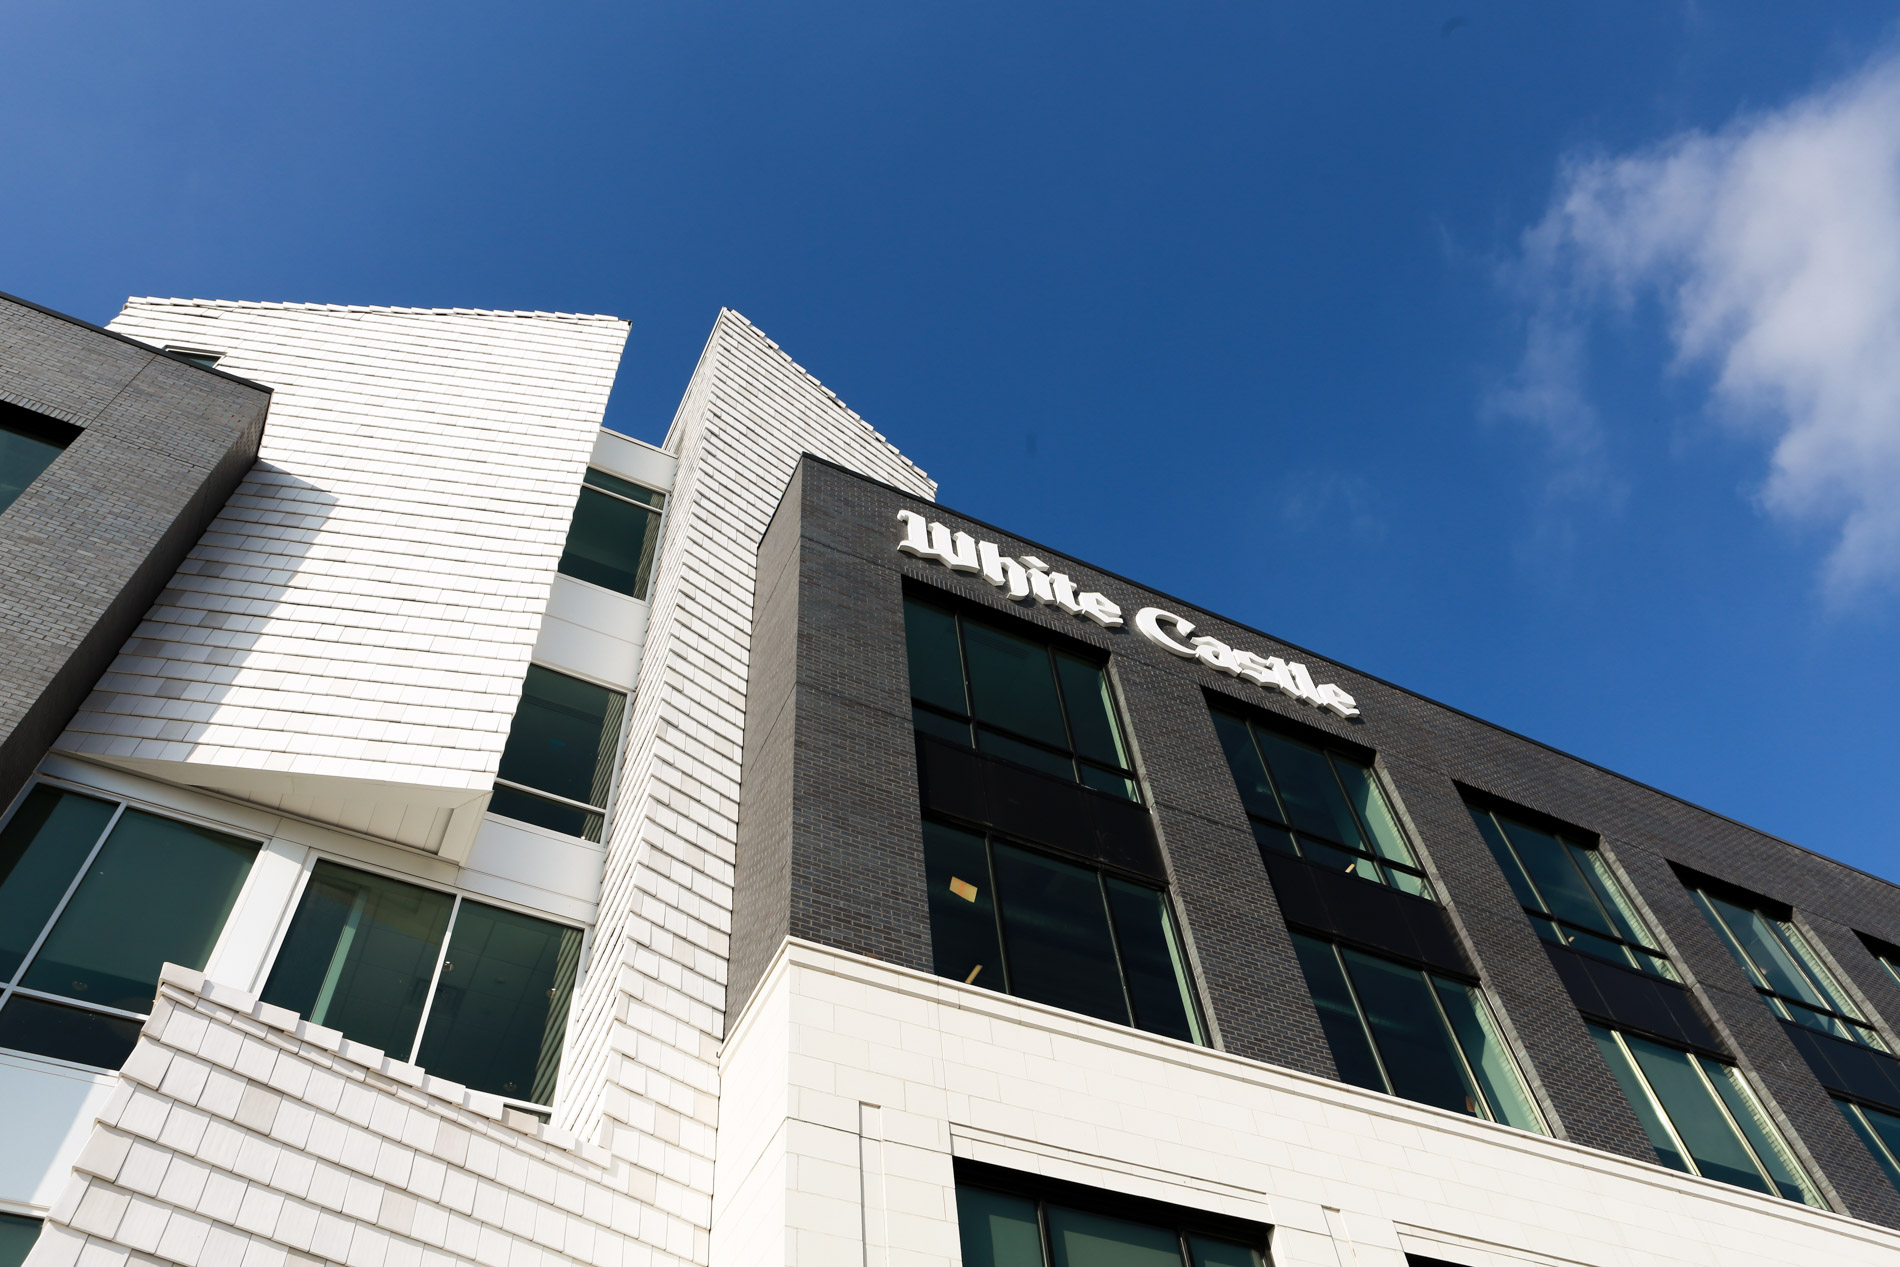 Artistic shot of the White Castle corporate office building exterior.